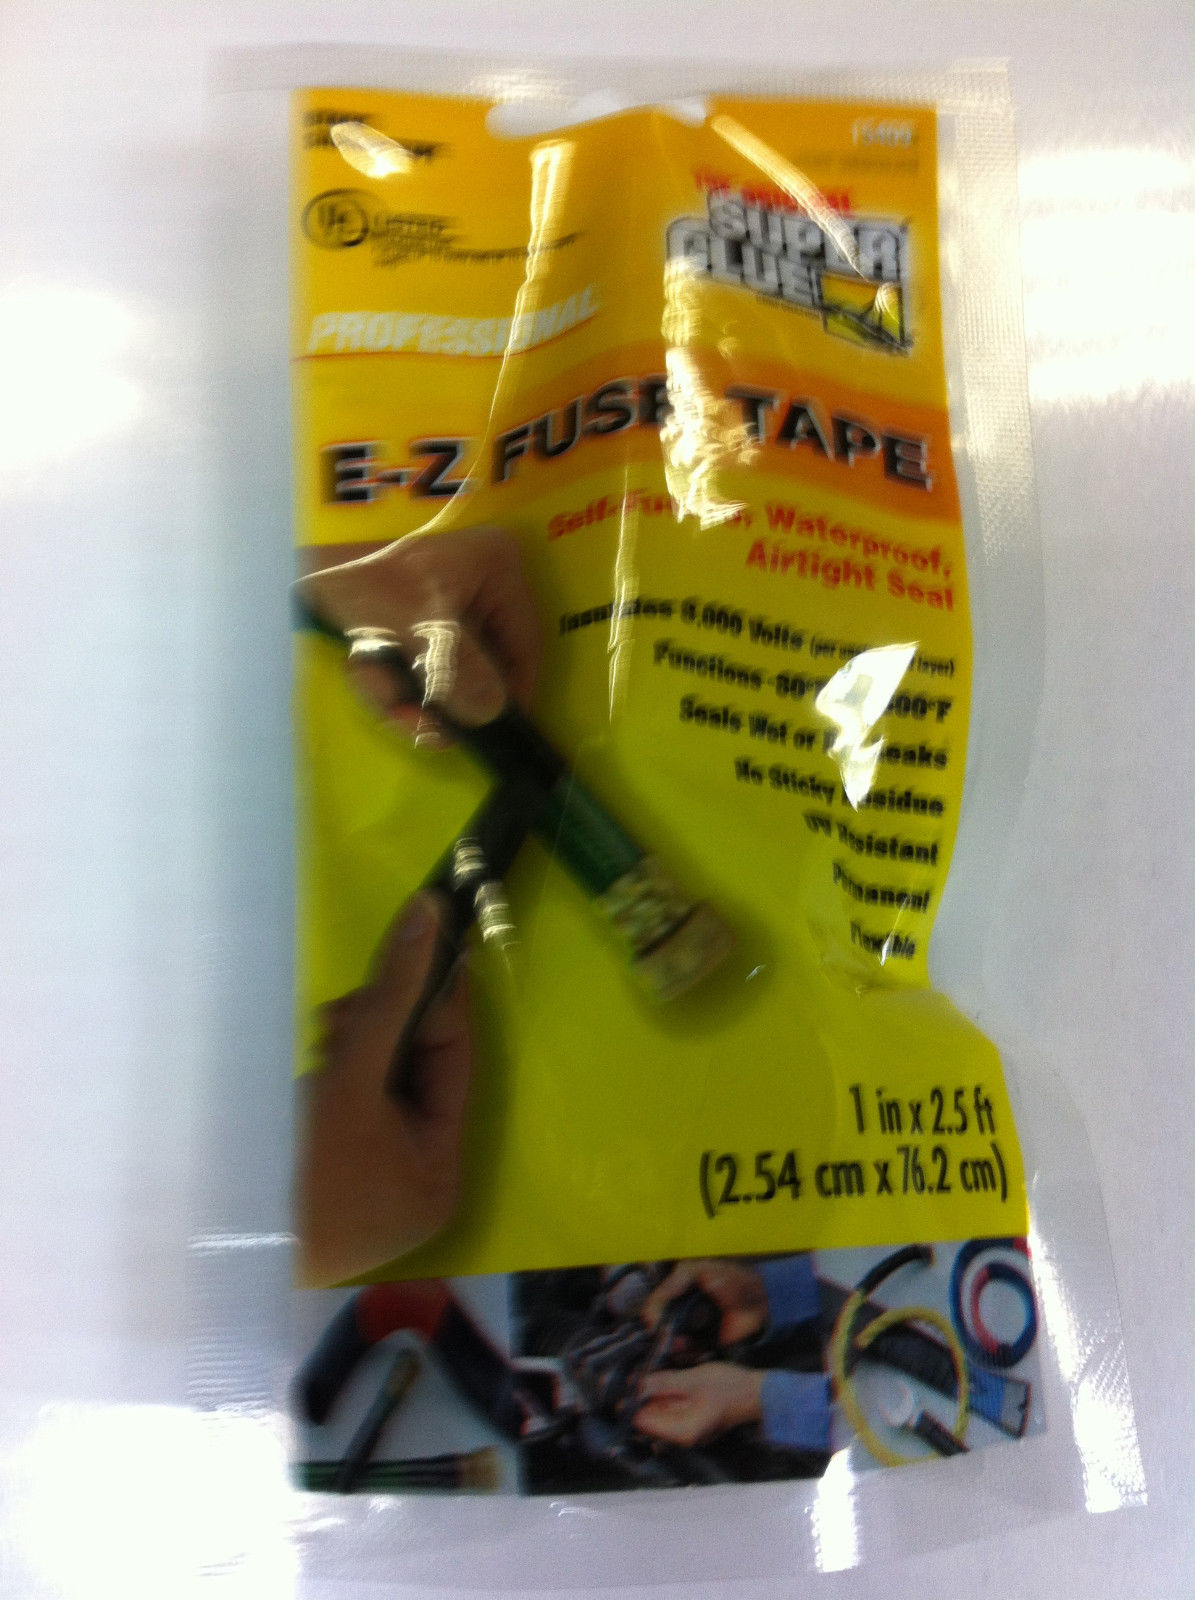 E-Z FUSE TAPE SELF FUSING,WATERPROOF,AIRTIGHT SEAL-BLACK